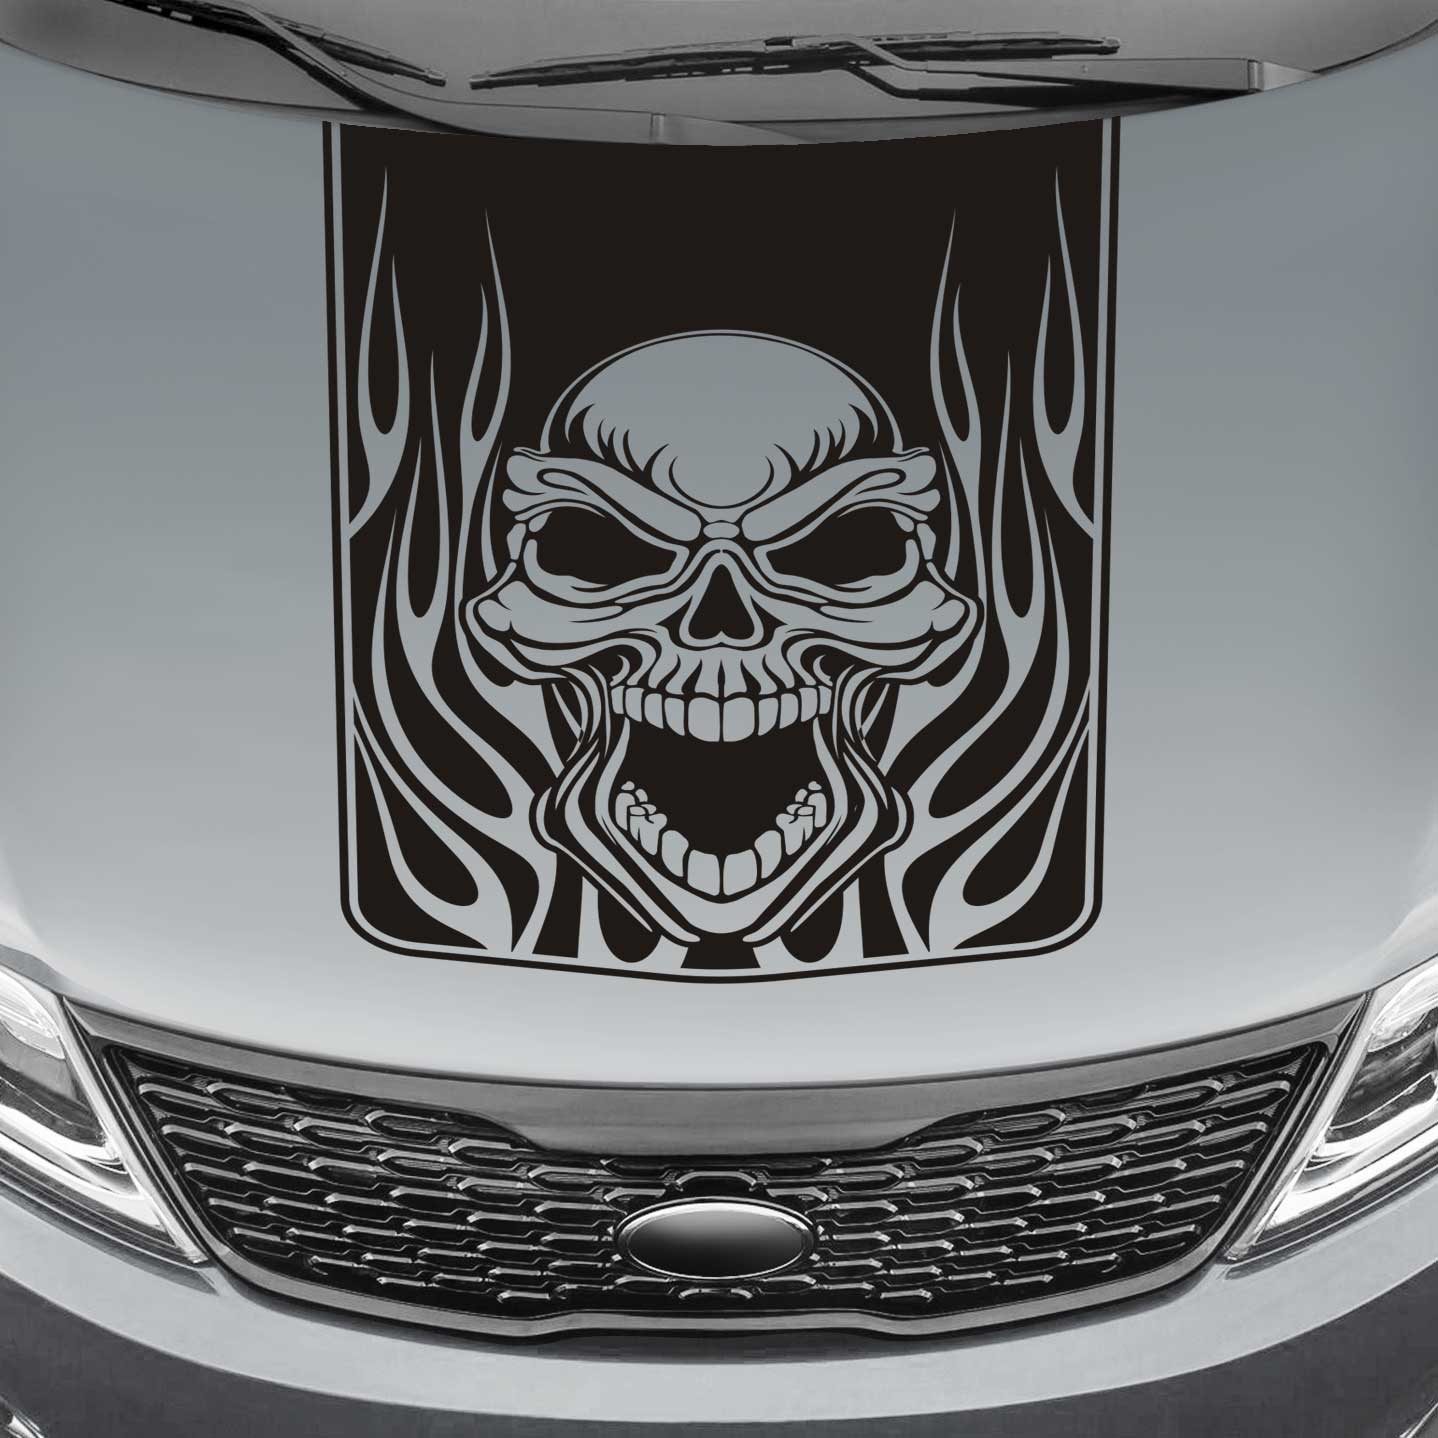 Skull & Flames Blackout Truck Hood Decal Sticker